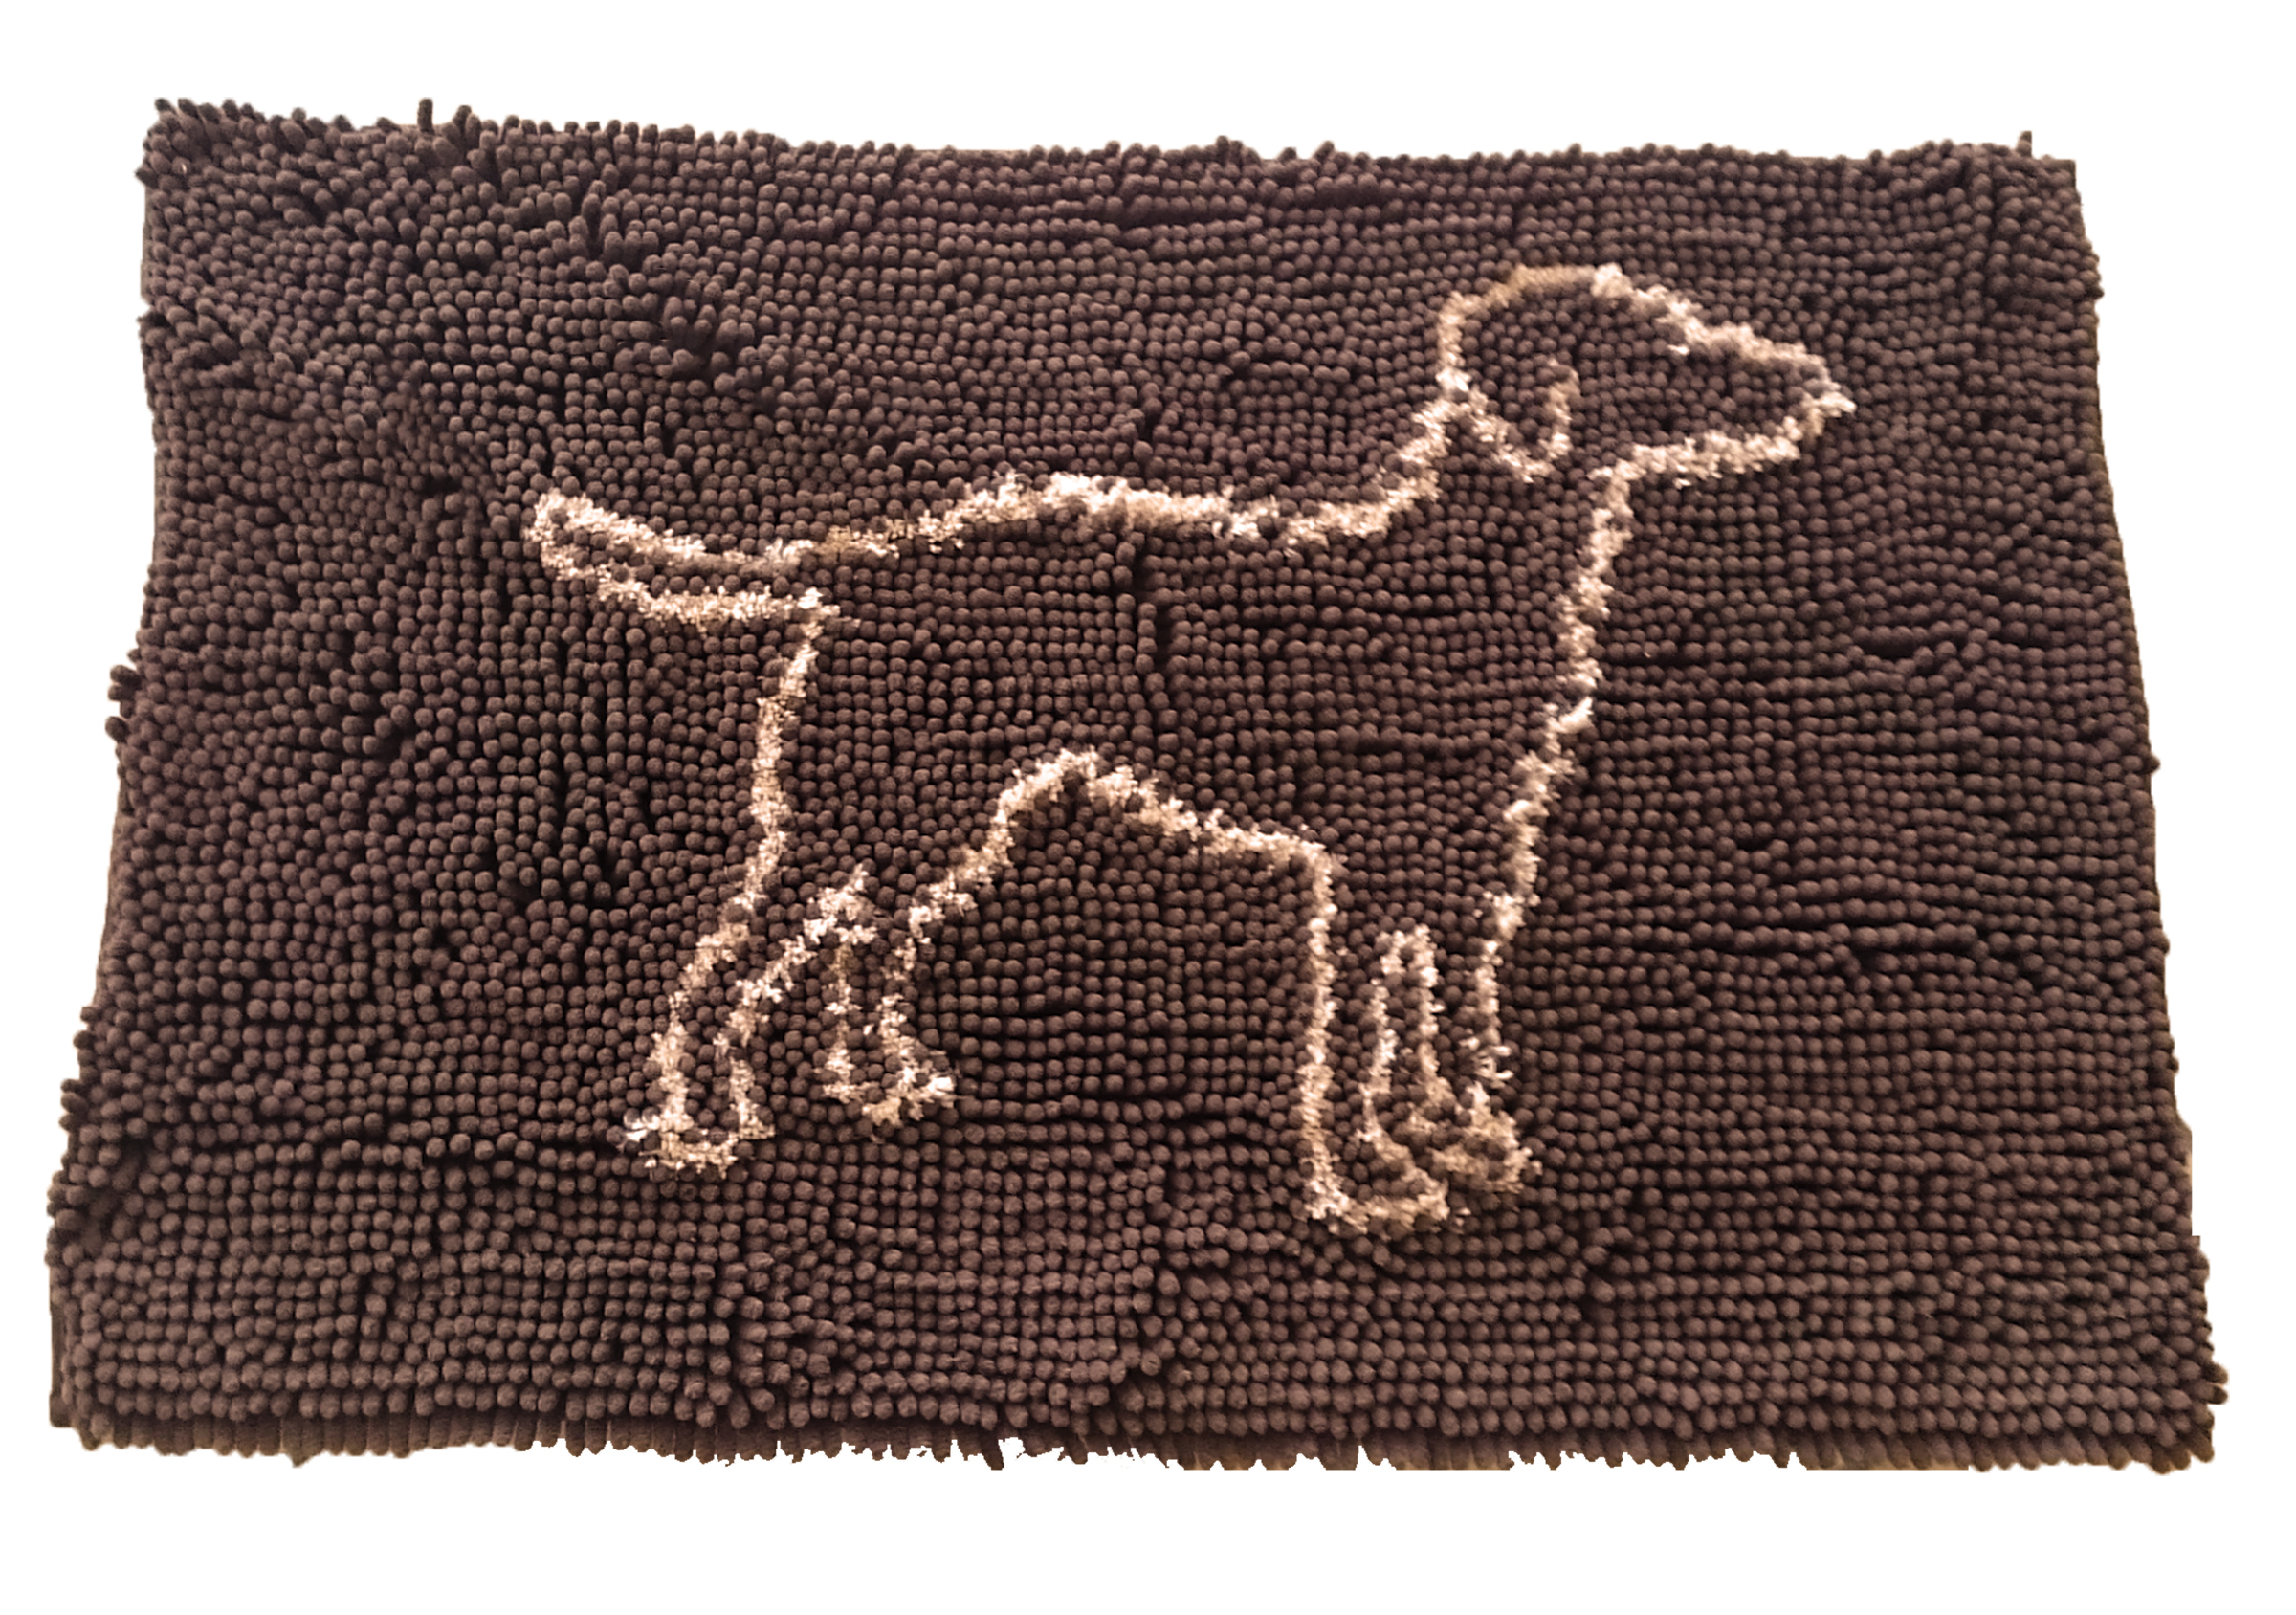 pin medium layer mat clean iprimio litter through by puppy pad option box pending and water proof holes trapper mats brown falls ez size cat patent small